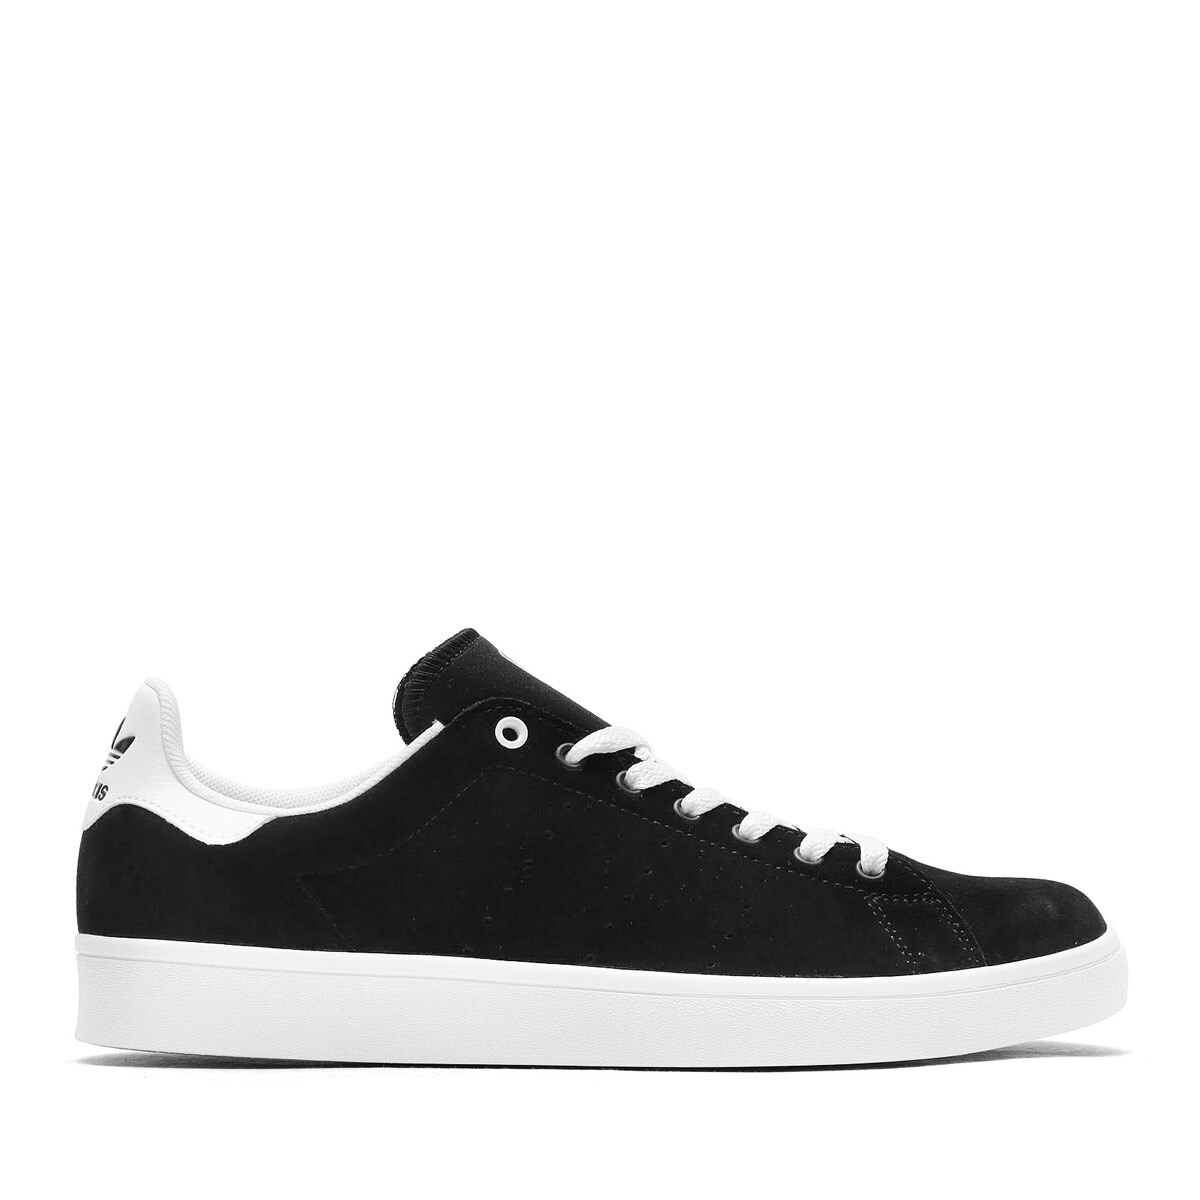 the latest 91568 5cc43 adidas Originals STAN SMITH VULC (Adidas originals Stan Smith) (Core  Black/Core Black/Running White) 17SS-I